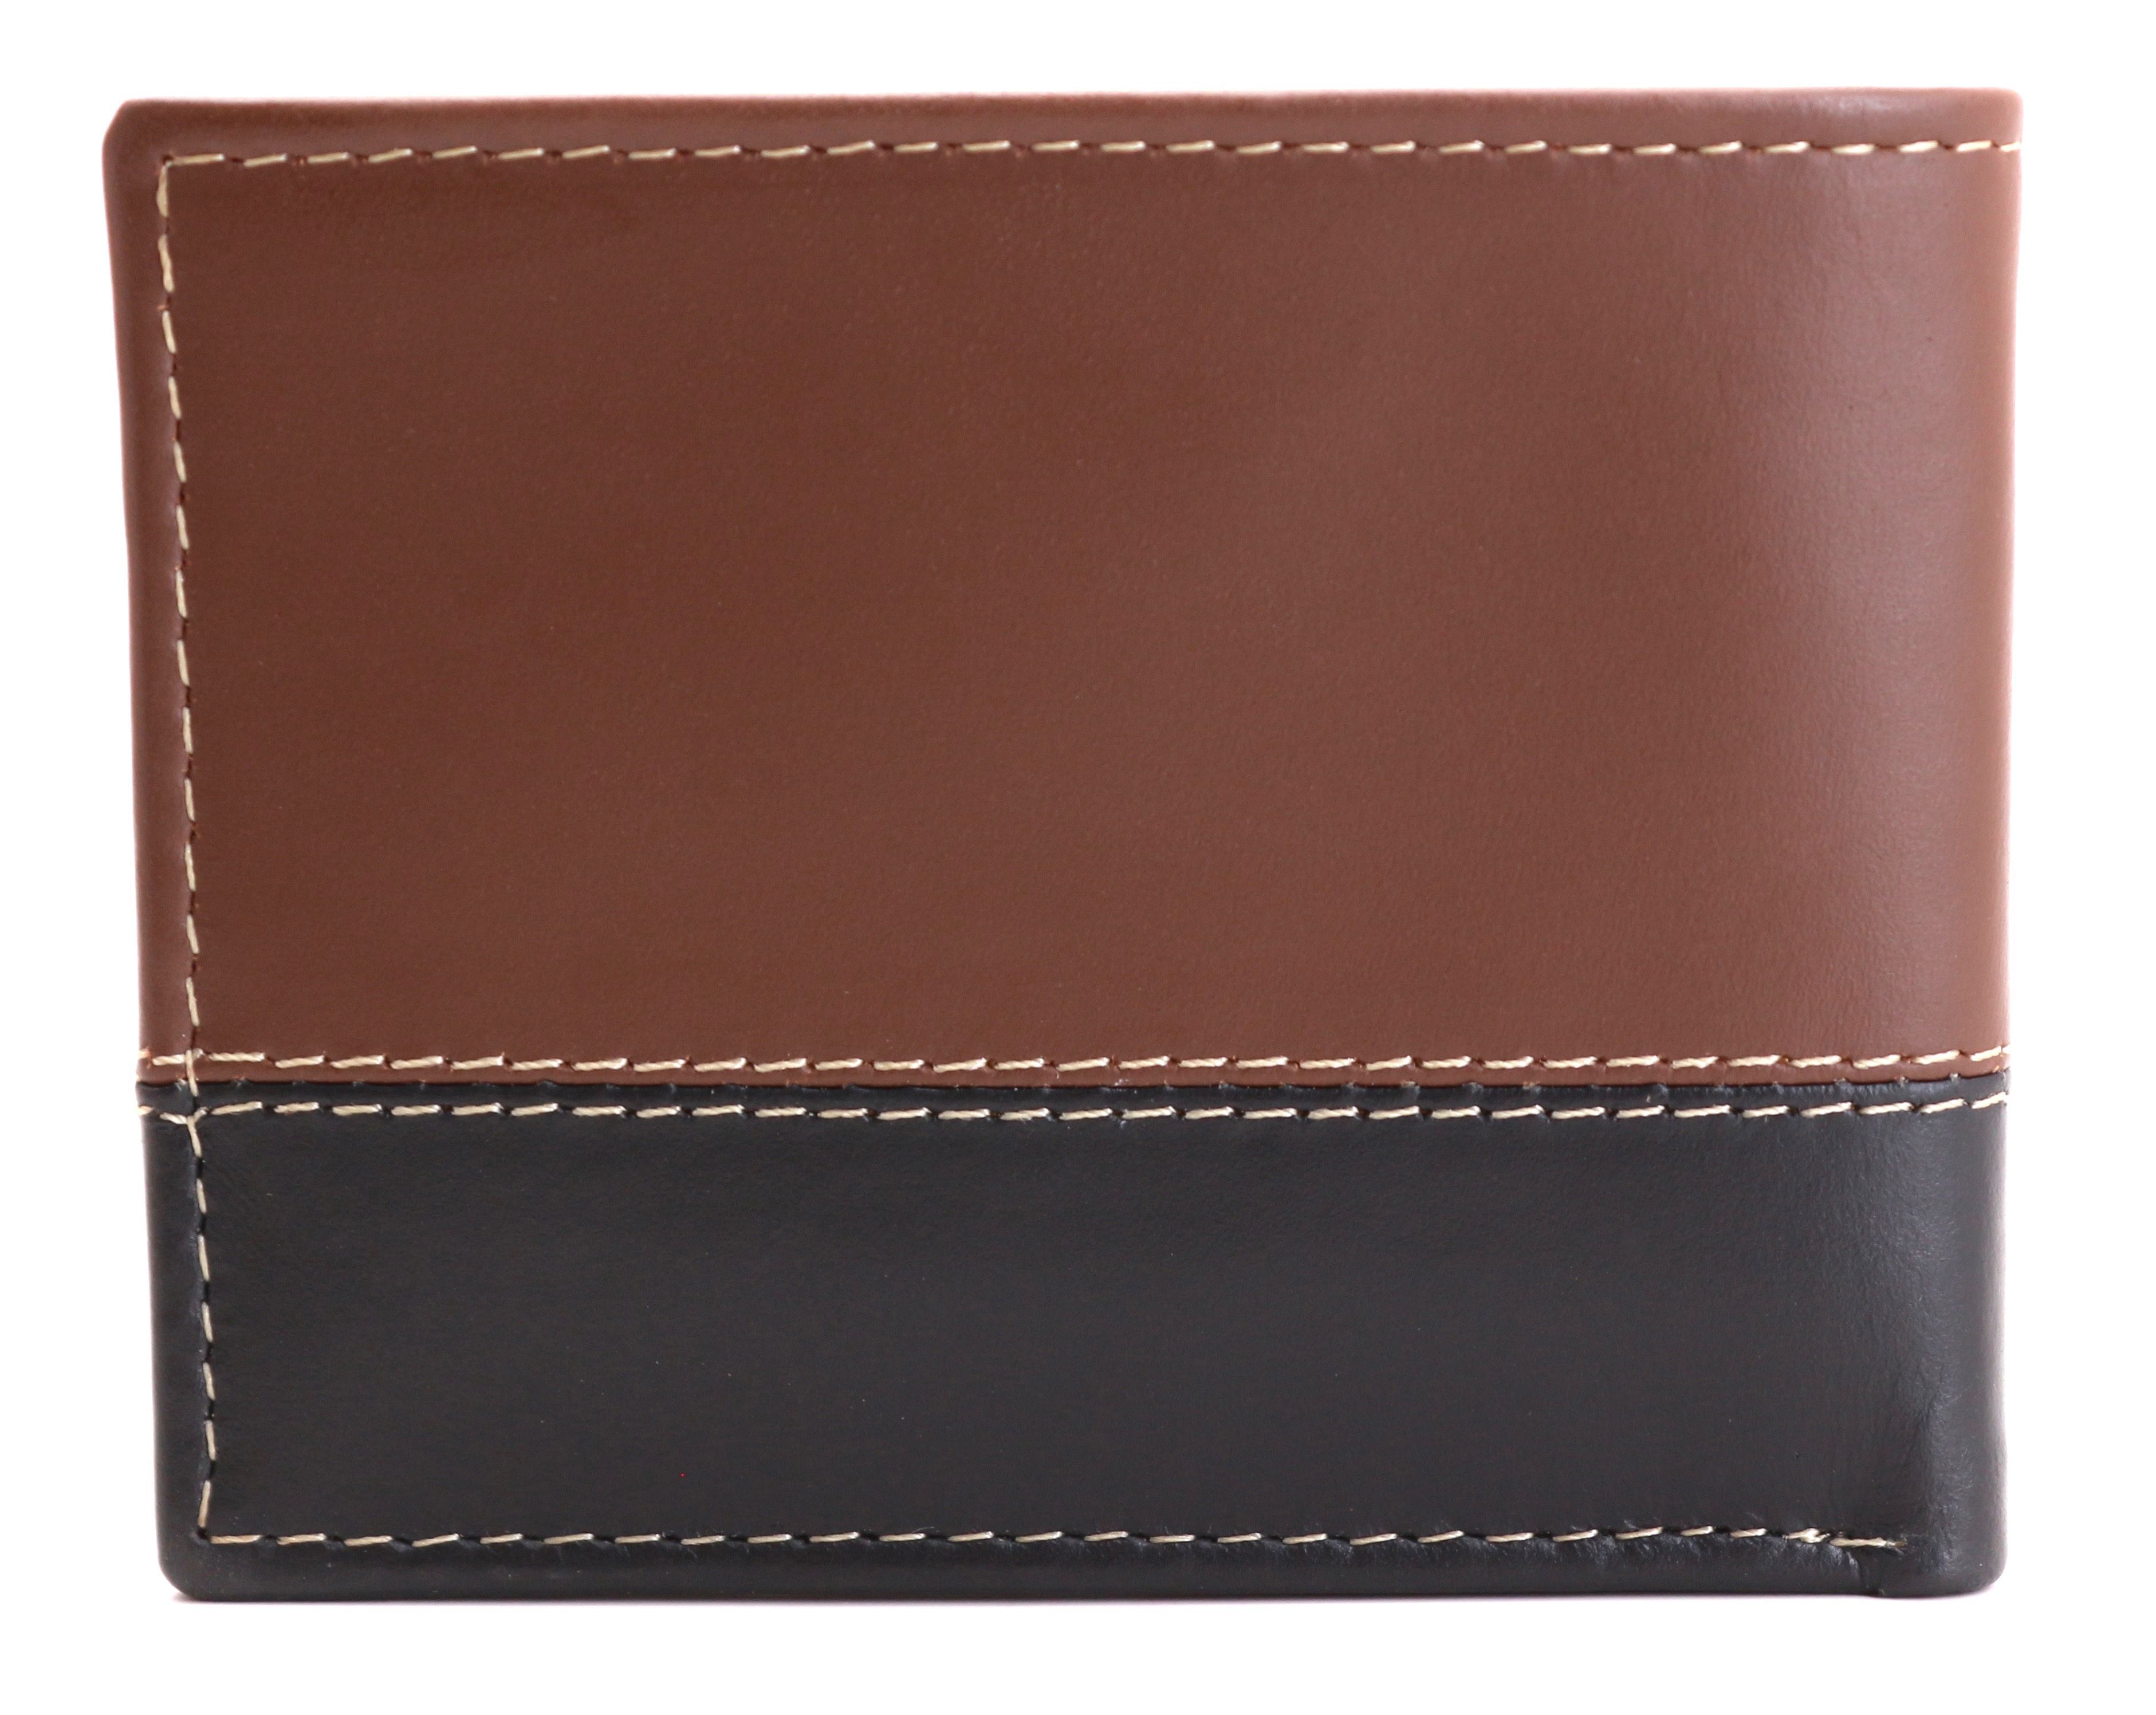 Timberland-Men-039-s-Genuine-Two-Tone-Leather-Credit-Card-Billfold-Commuter-Wallet thumbnail 30